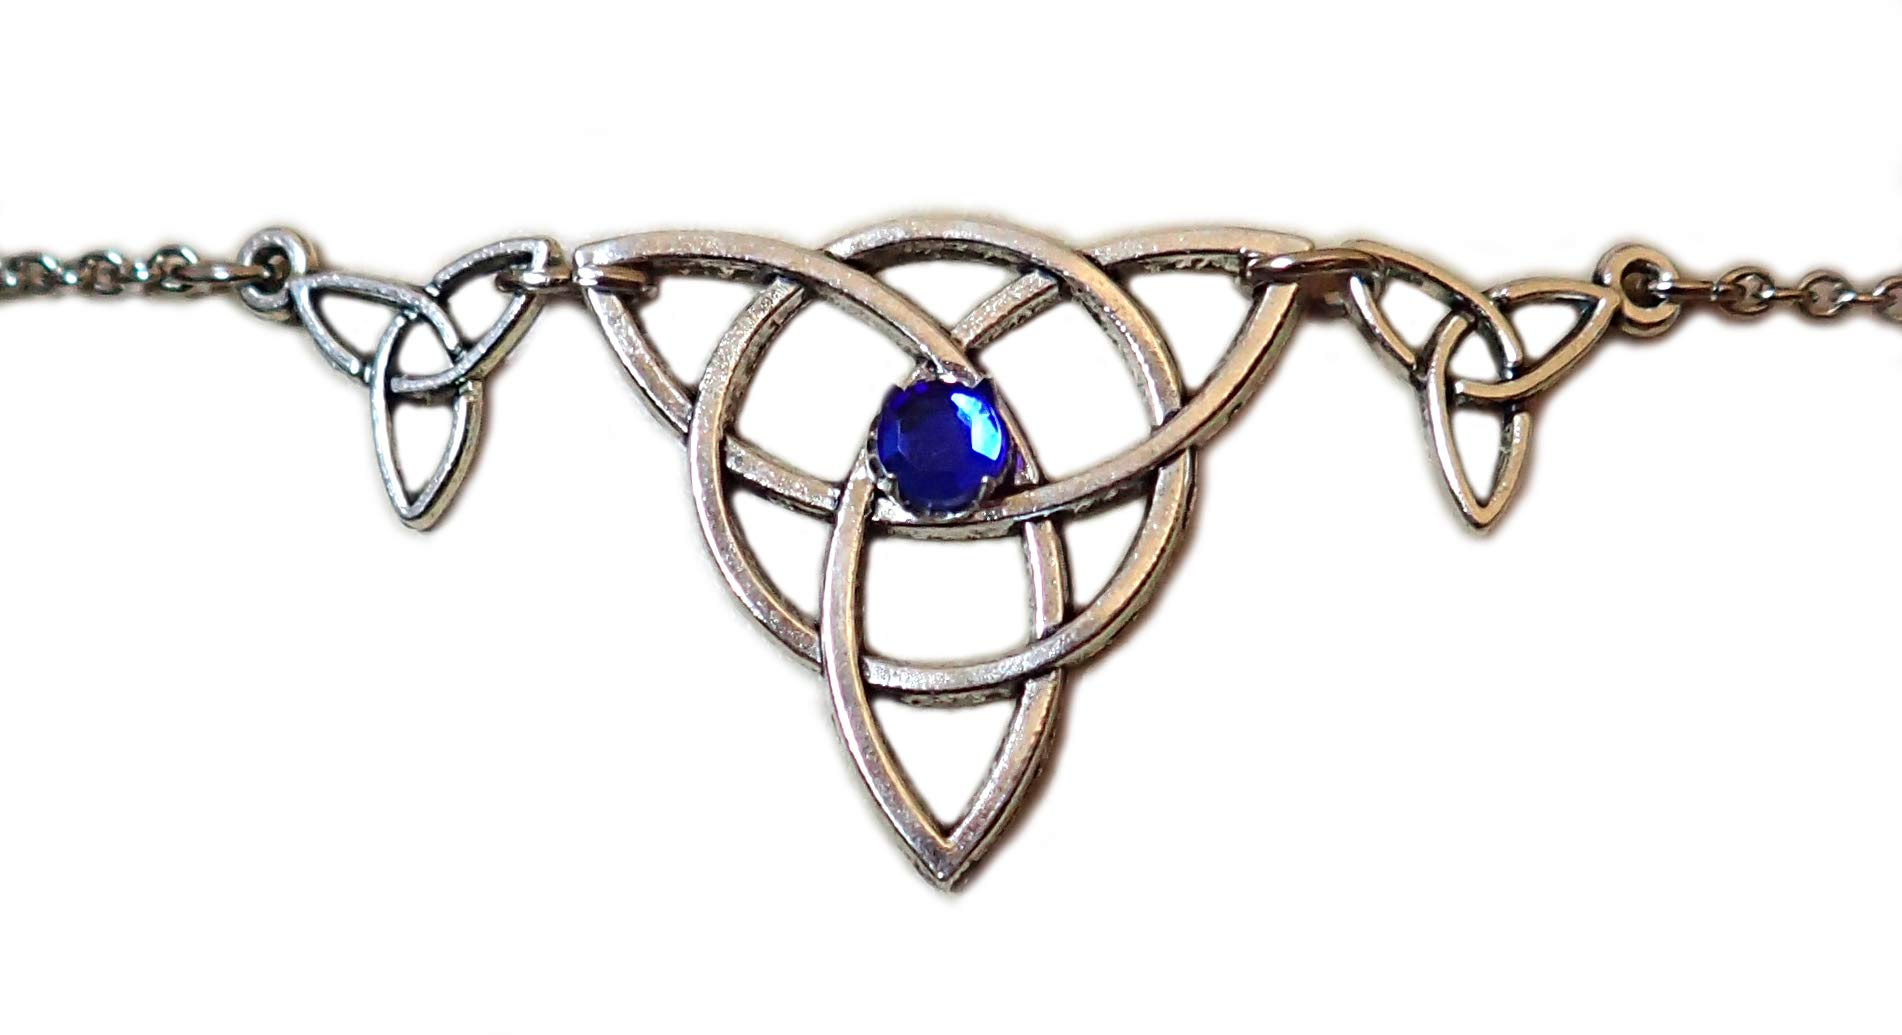 Moon Maiden Jewelry Celtic Triple Triquetra Trinity Headpiece Dark Blue